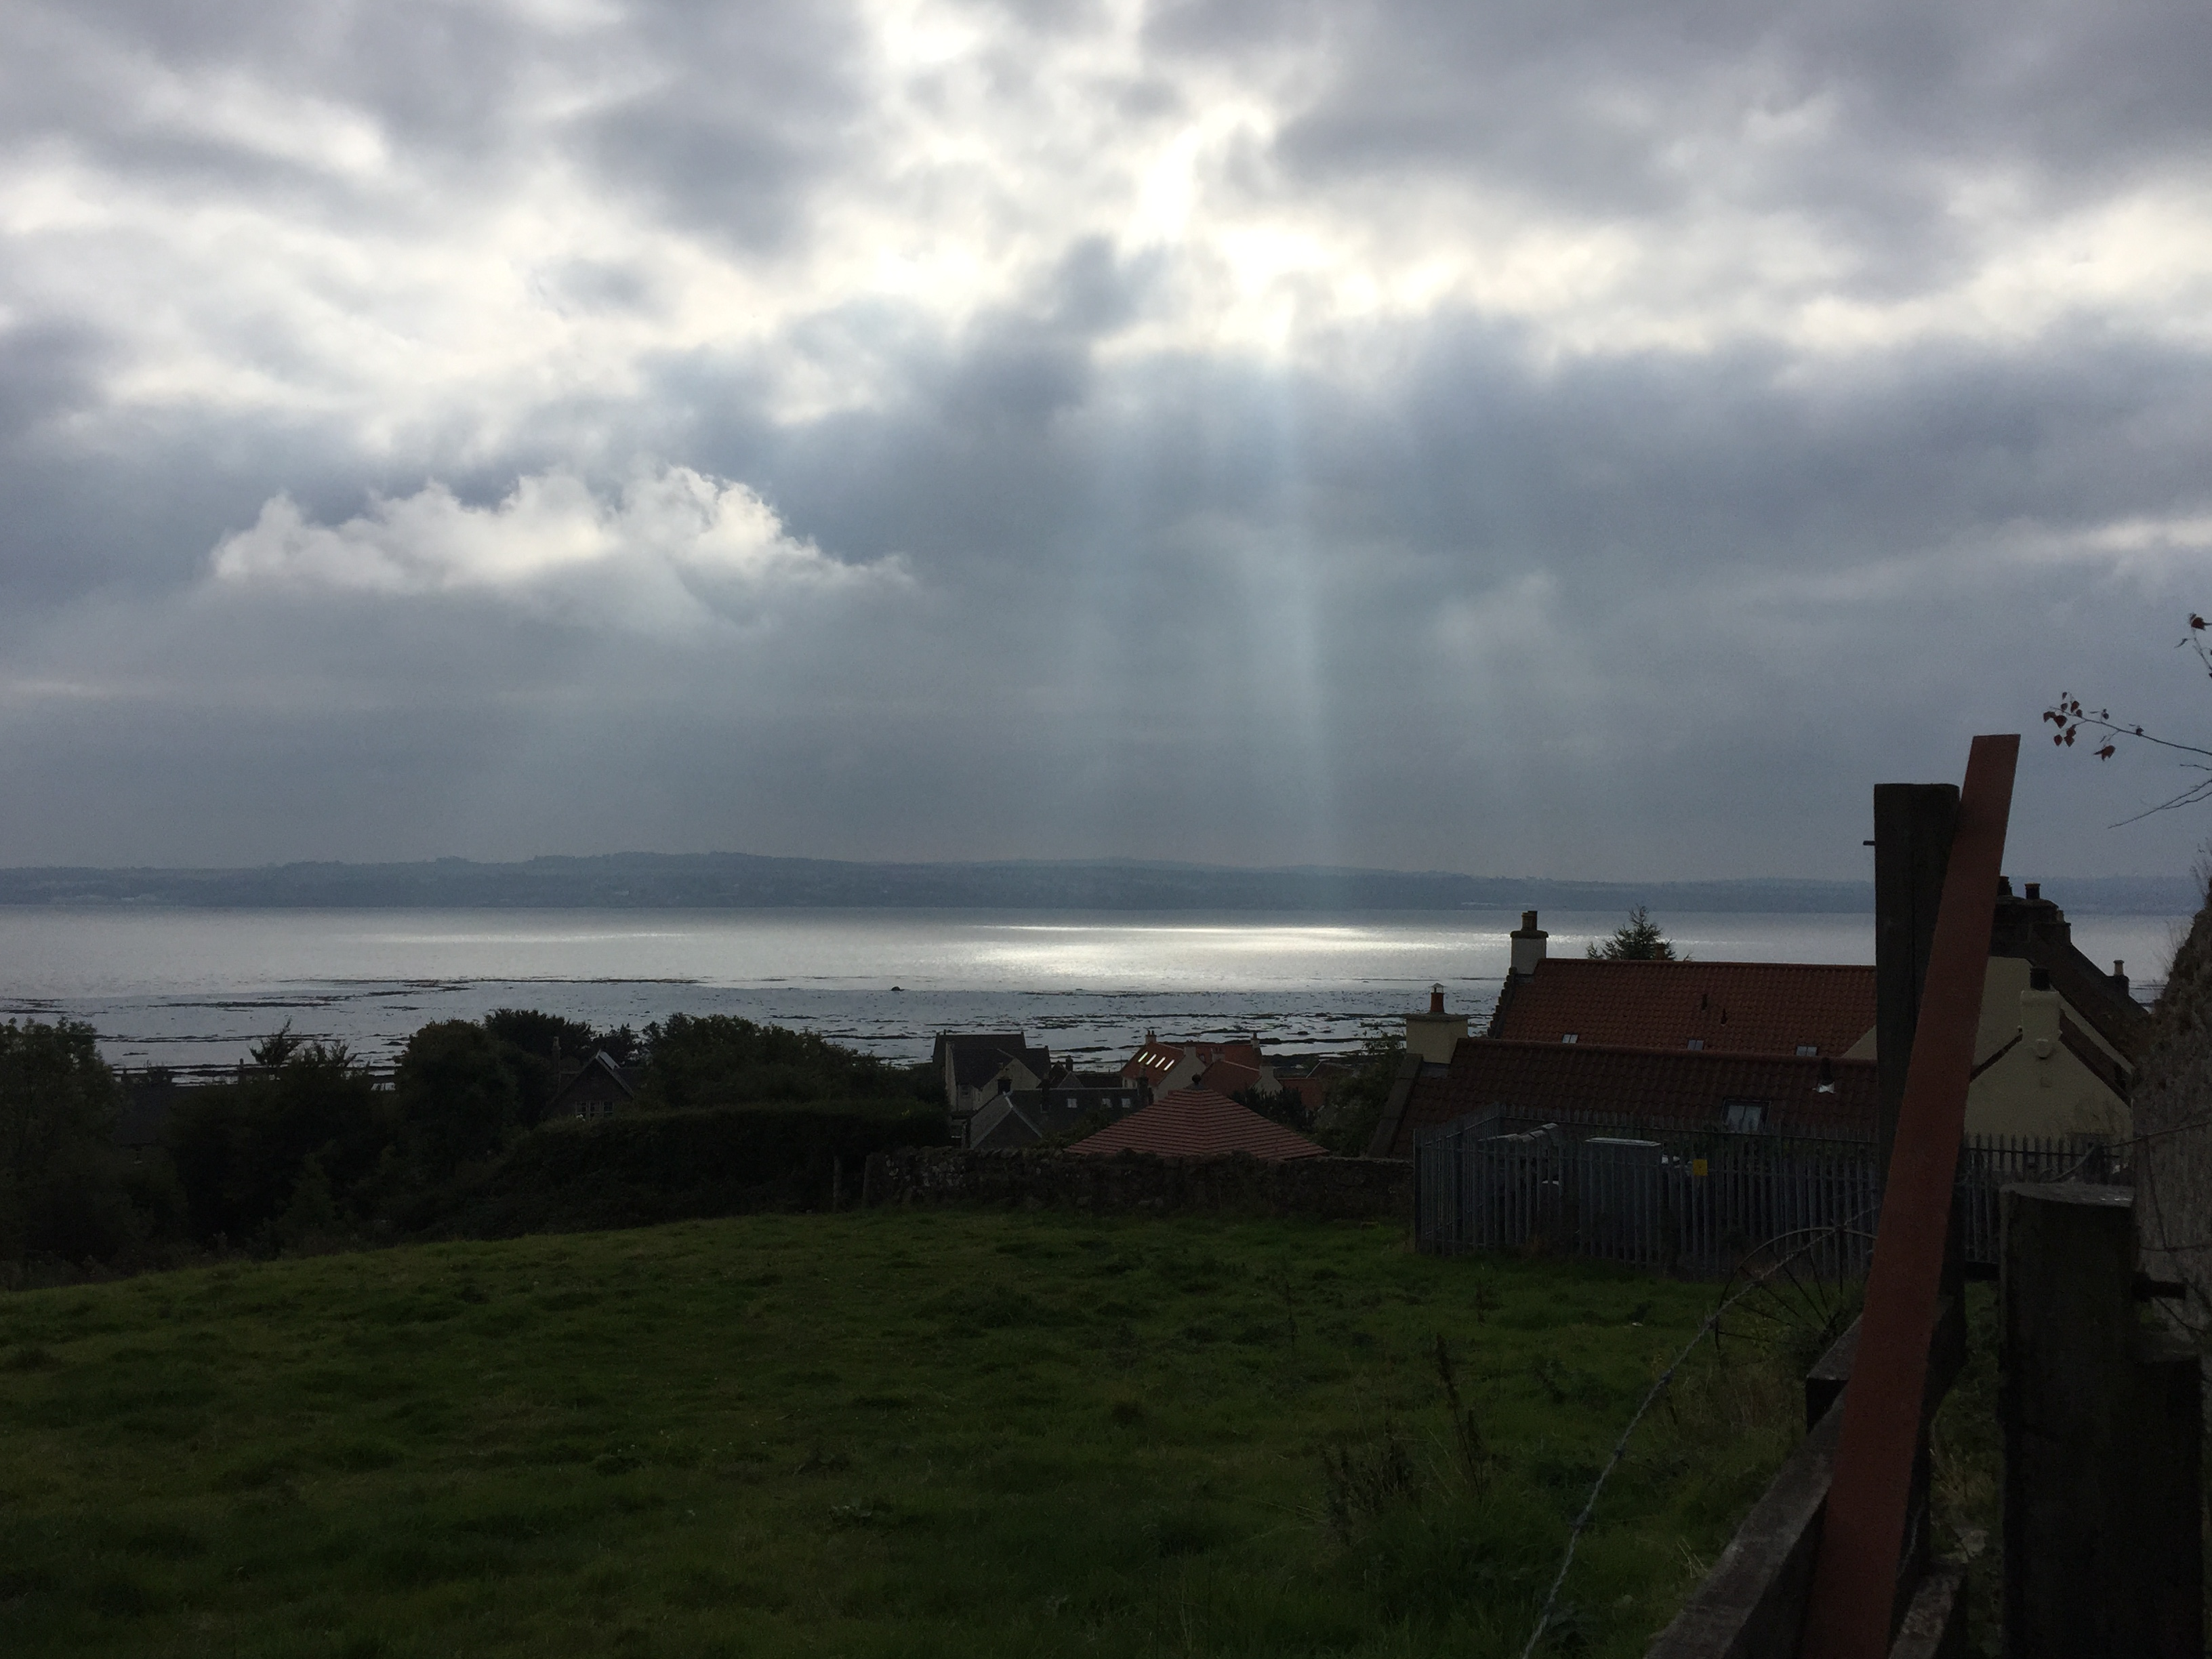 Sunlight shining on the water through clouds near Culross, Scotland.